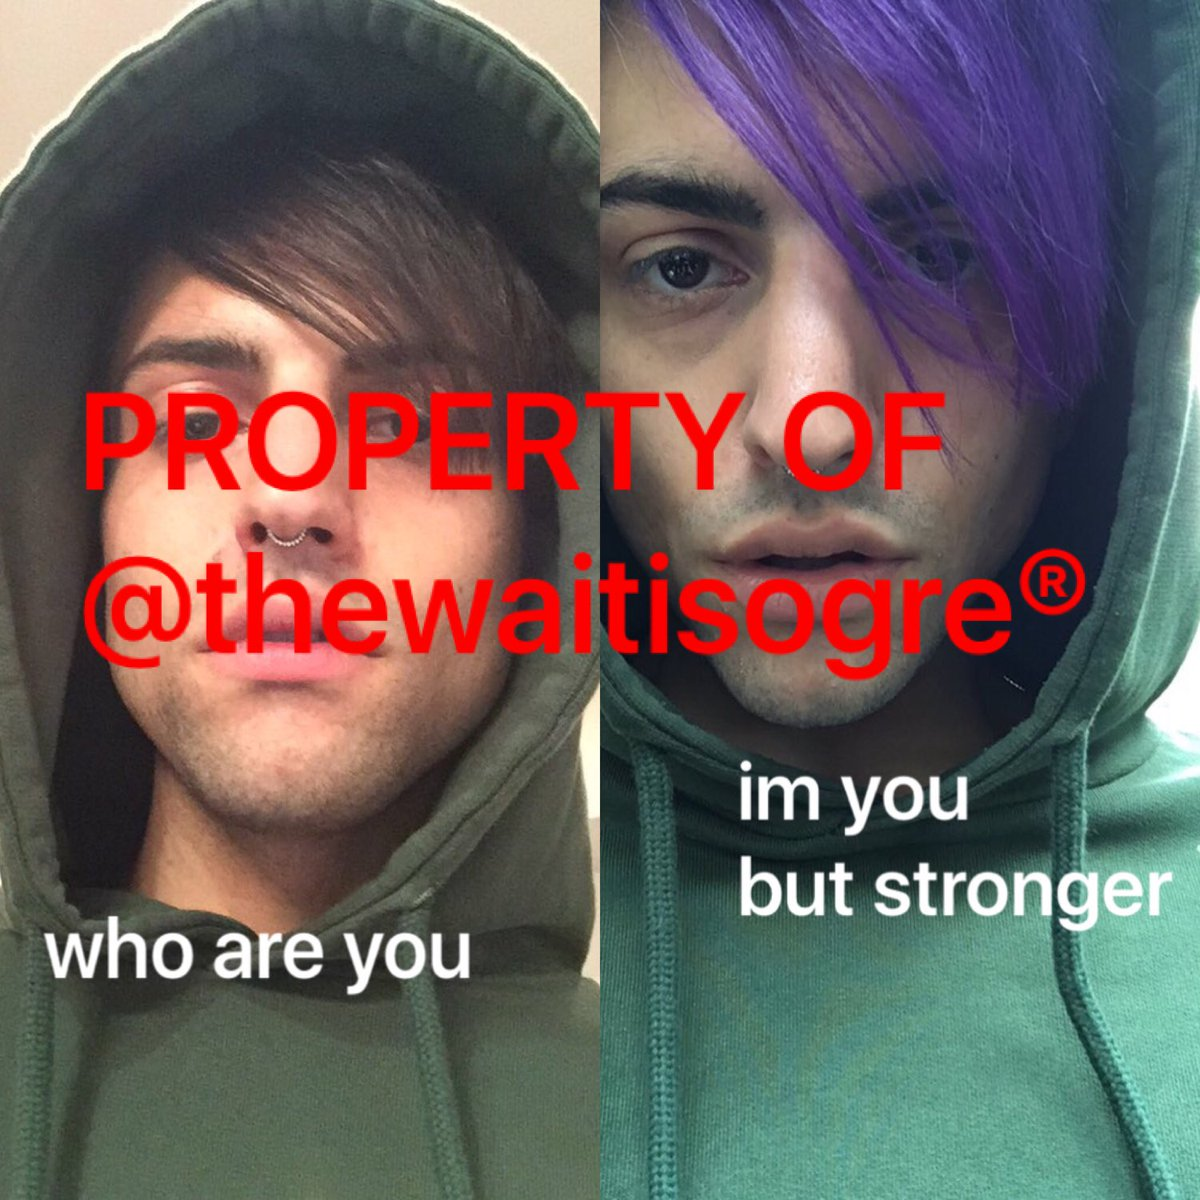 I made a meme for @mitchgrassi if u want it watermarkless it will cost u 99 cents https://t.co/iWuY3spEZ5